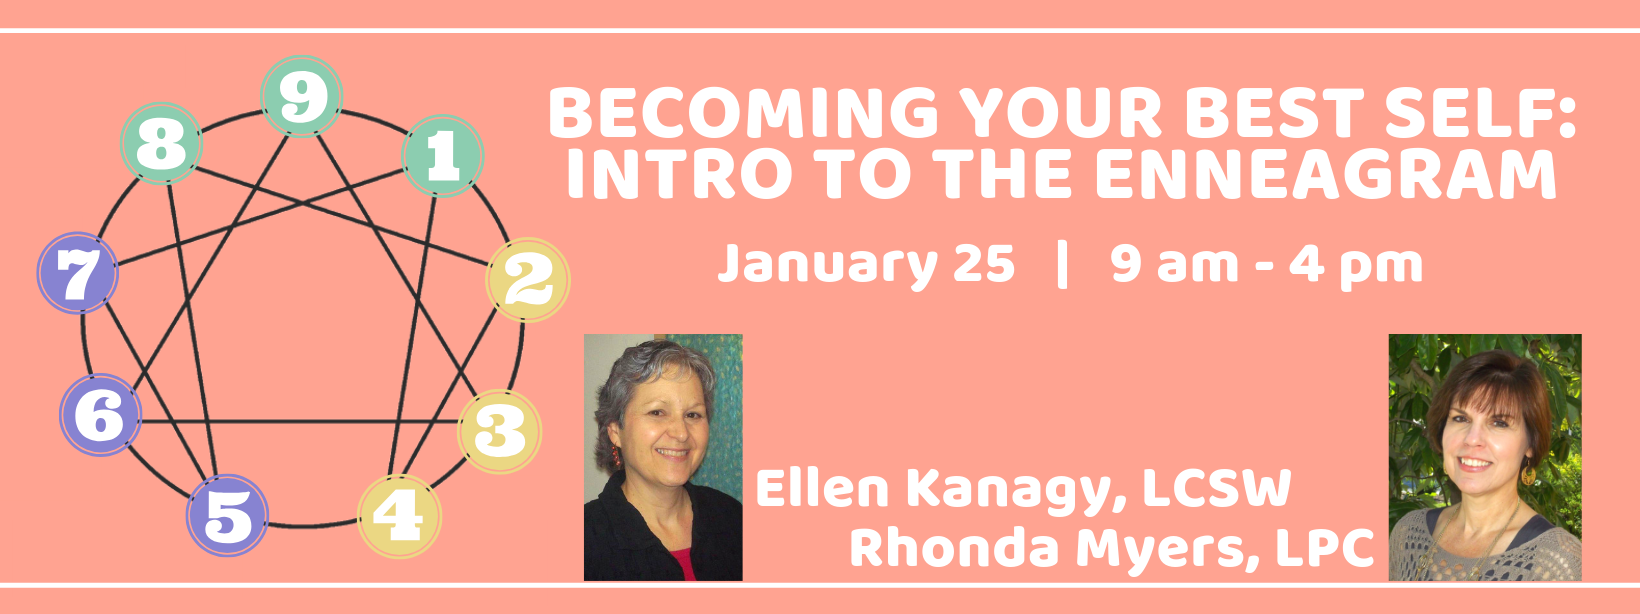 Becoming Your Best Self: Introduction to the Enneagram